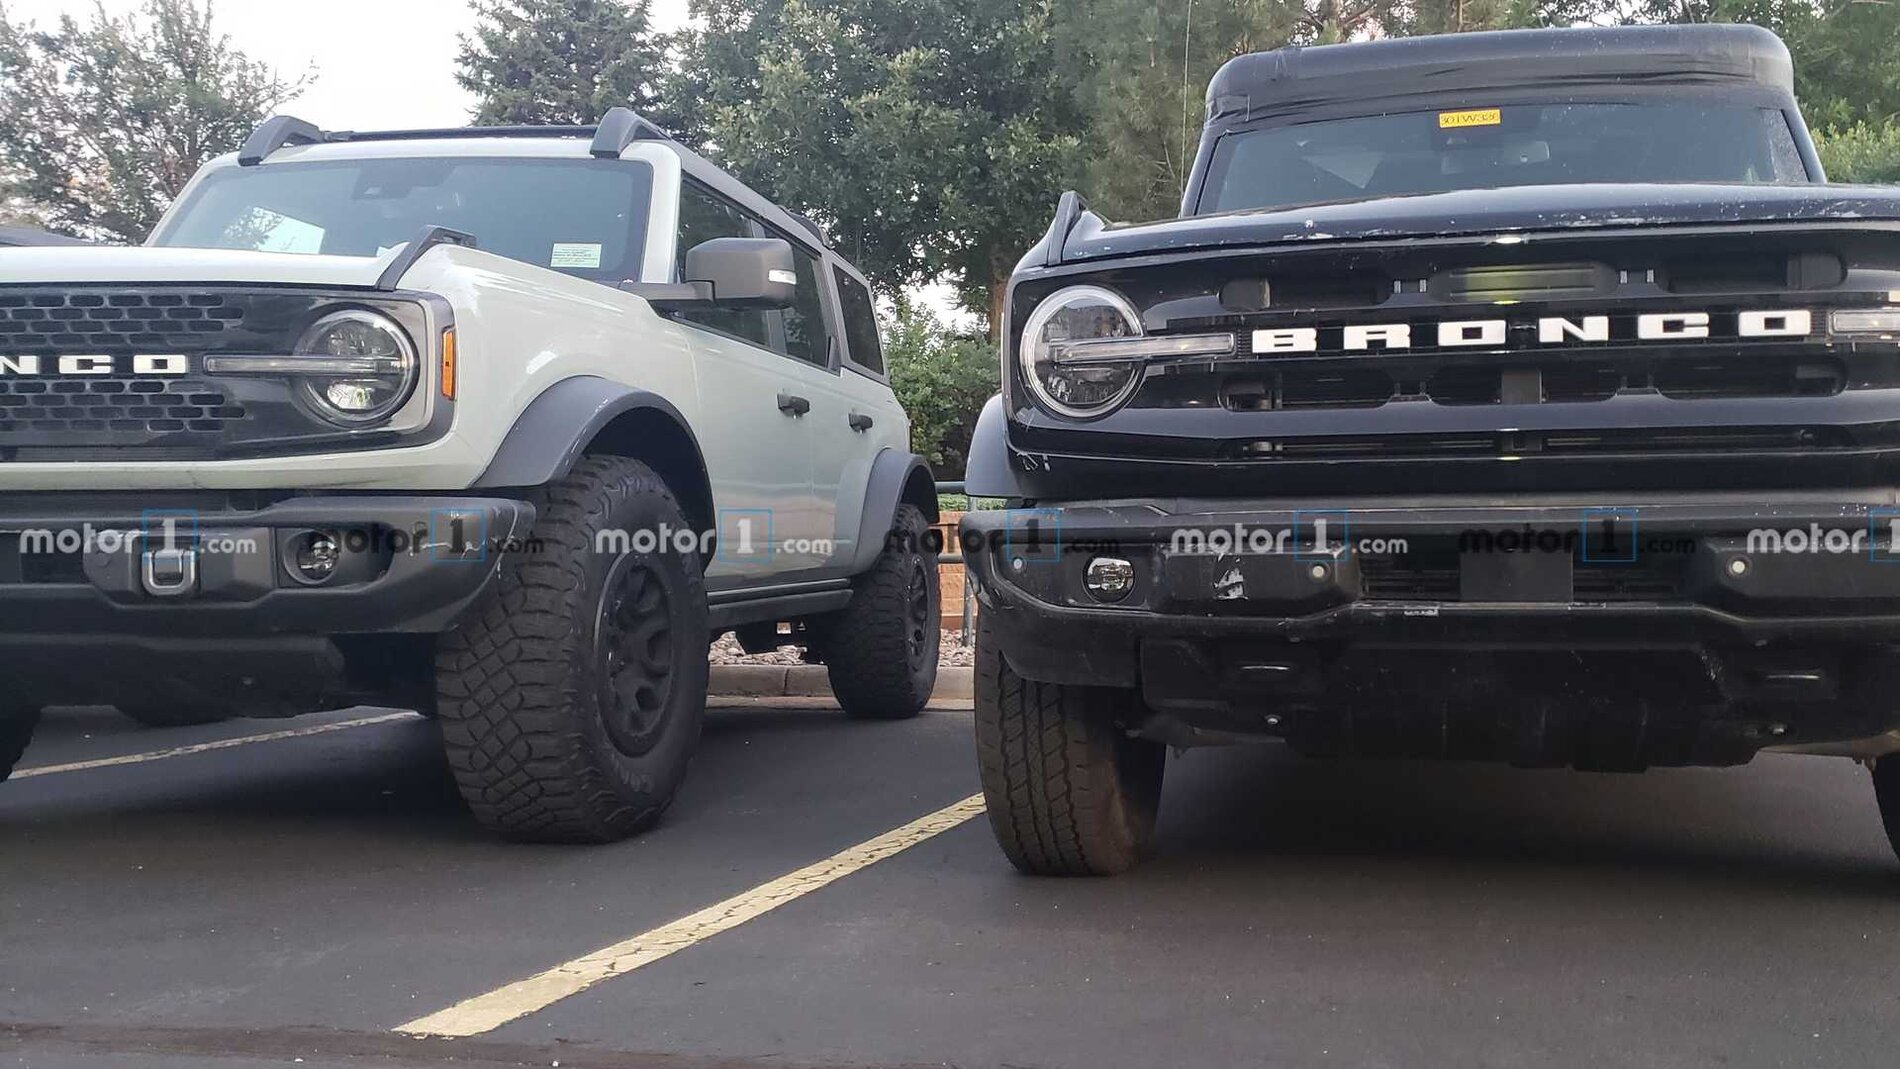 ford-bronco-sasquatch-comparison-front-2-jpg.jpg